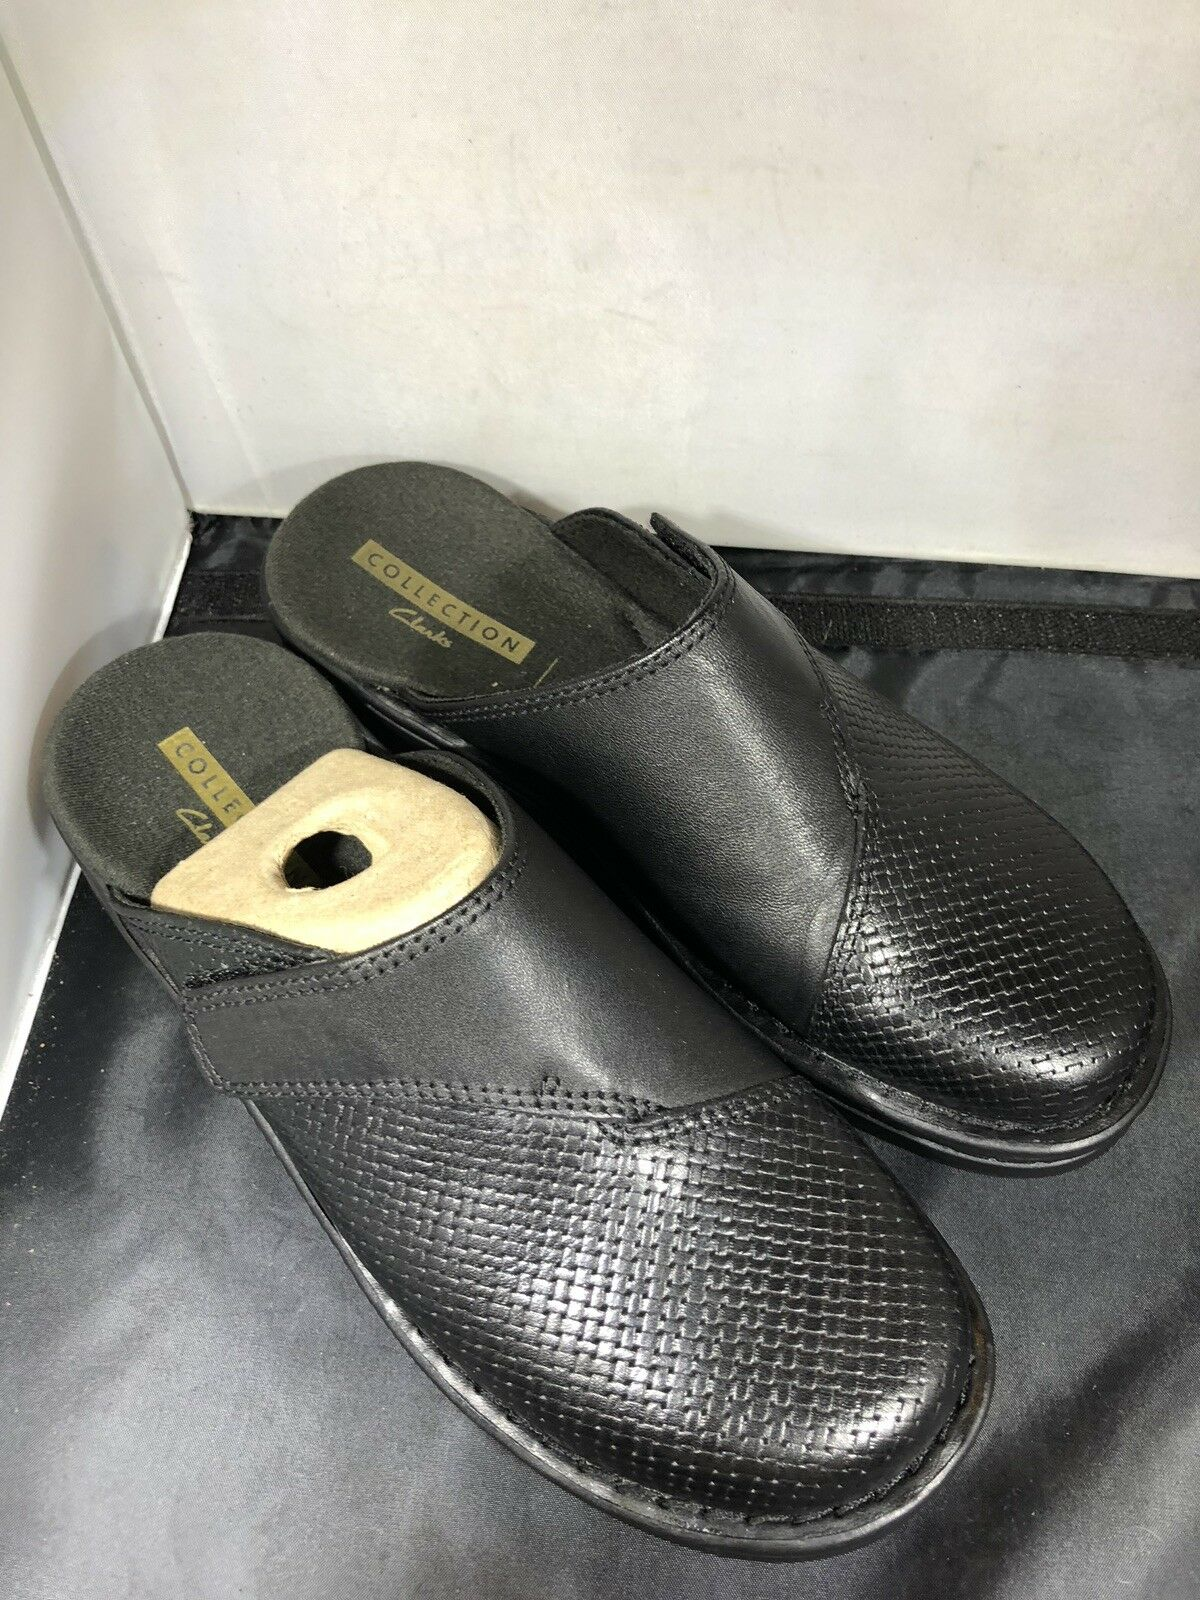 Clarks Womens Patty Tayna black leather shoes size 6m 6m 6m   26129025 ( a121) 516abc